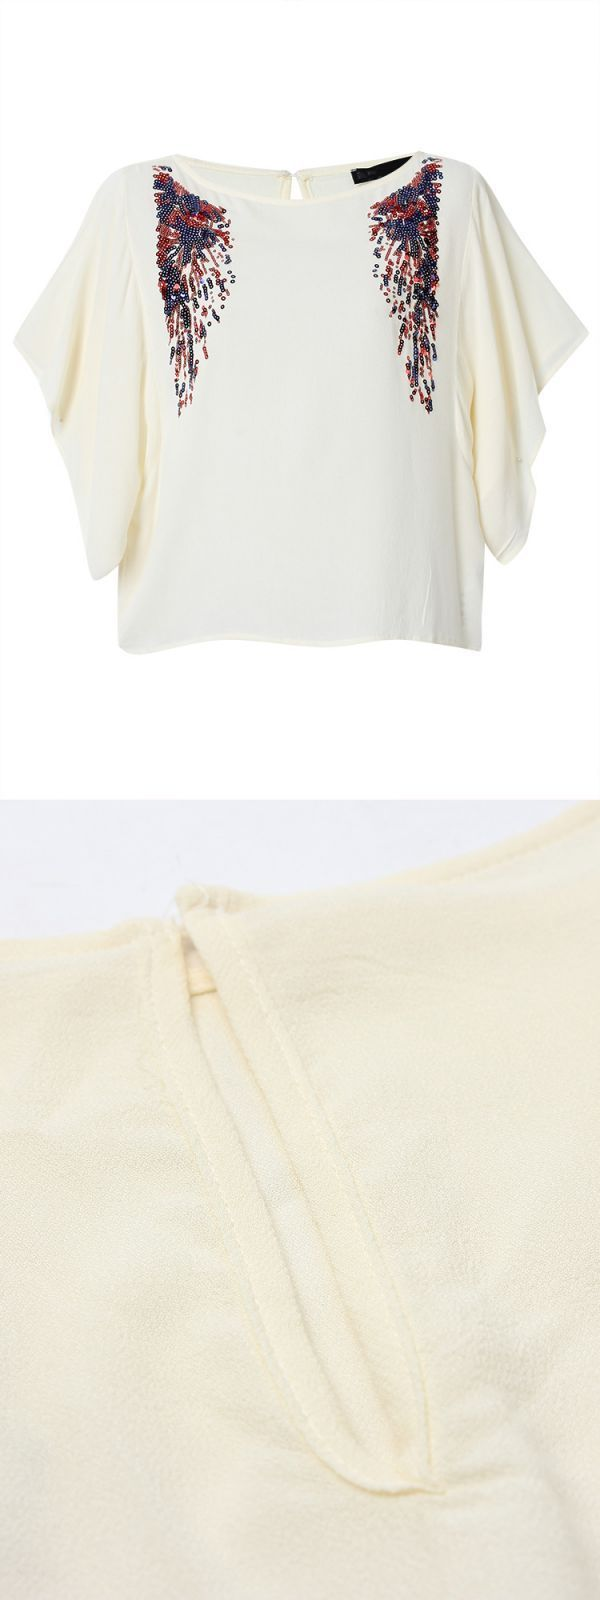 T shirt for girl with price casual loose sequins batwing sleeve women top t-shirt #13.1 #womens #t-shirts #3/4 #sleeve #t #shirts #womens #uk #bad #t #shirt #ideas #girl #girlie #girl #t #shirts #wholesale